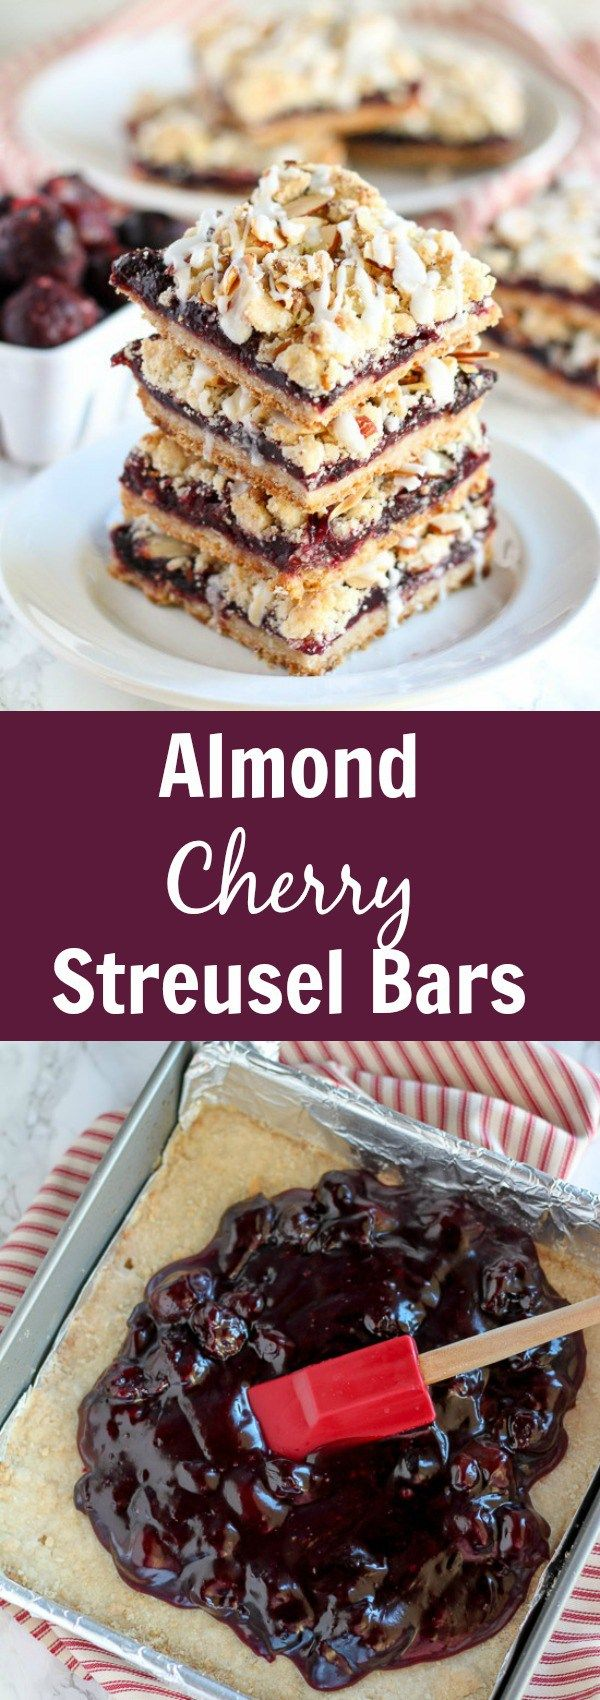 Almond Cherry Streusel Bars - Buttery, crumbly bars with a bold almond ...